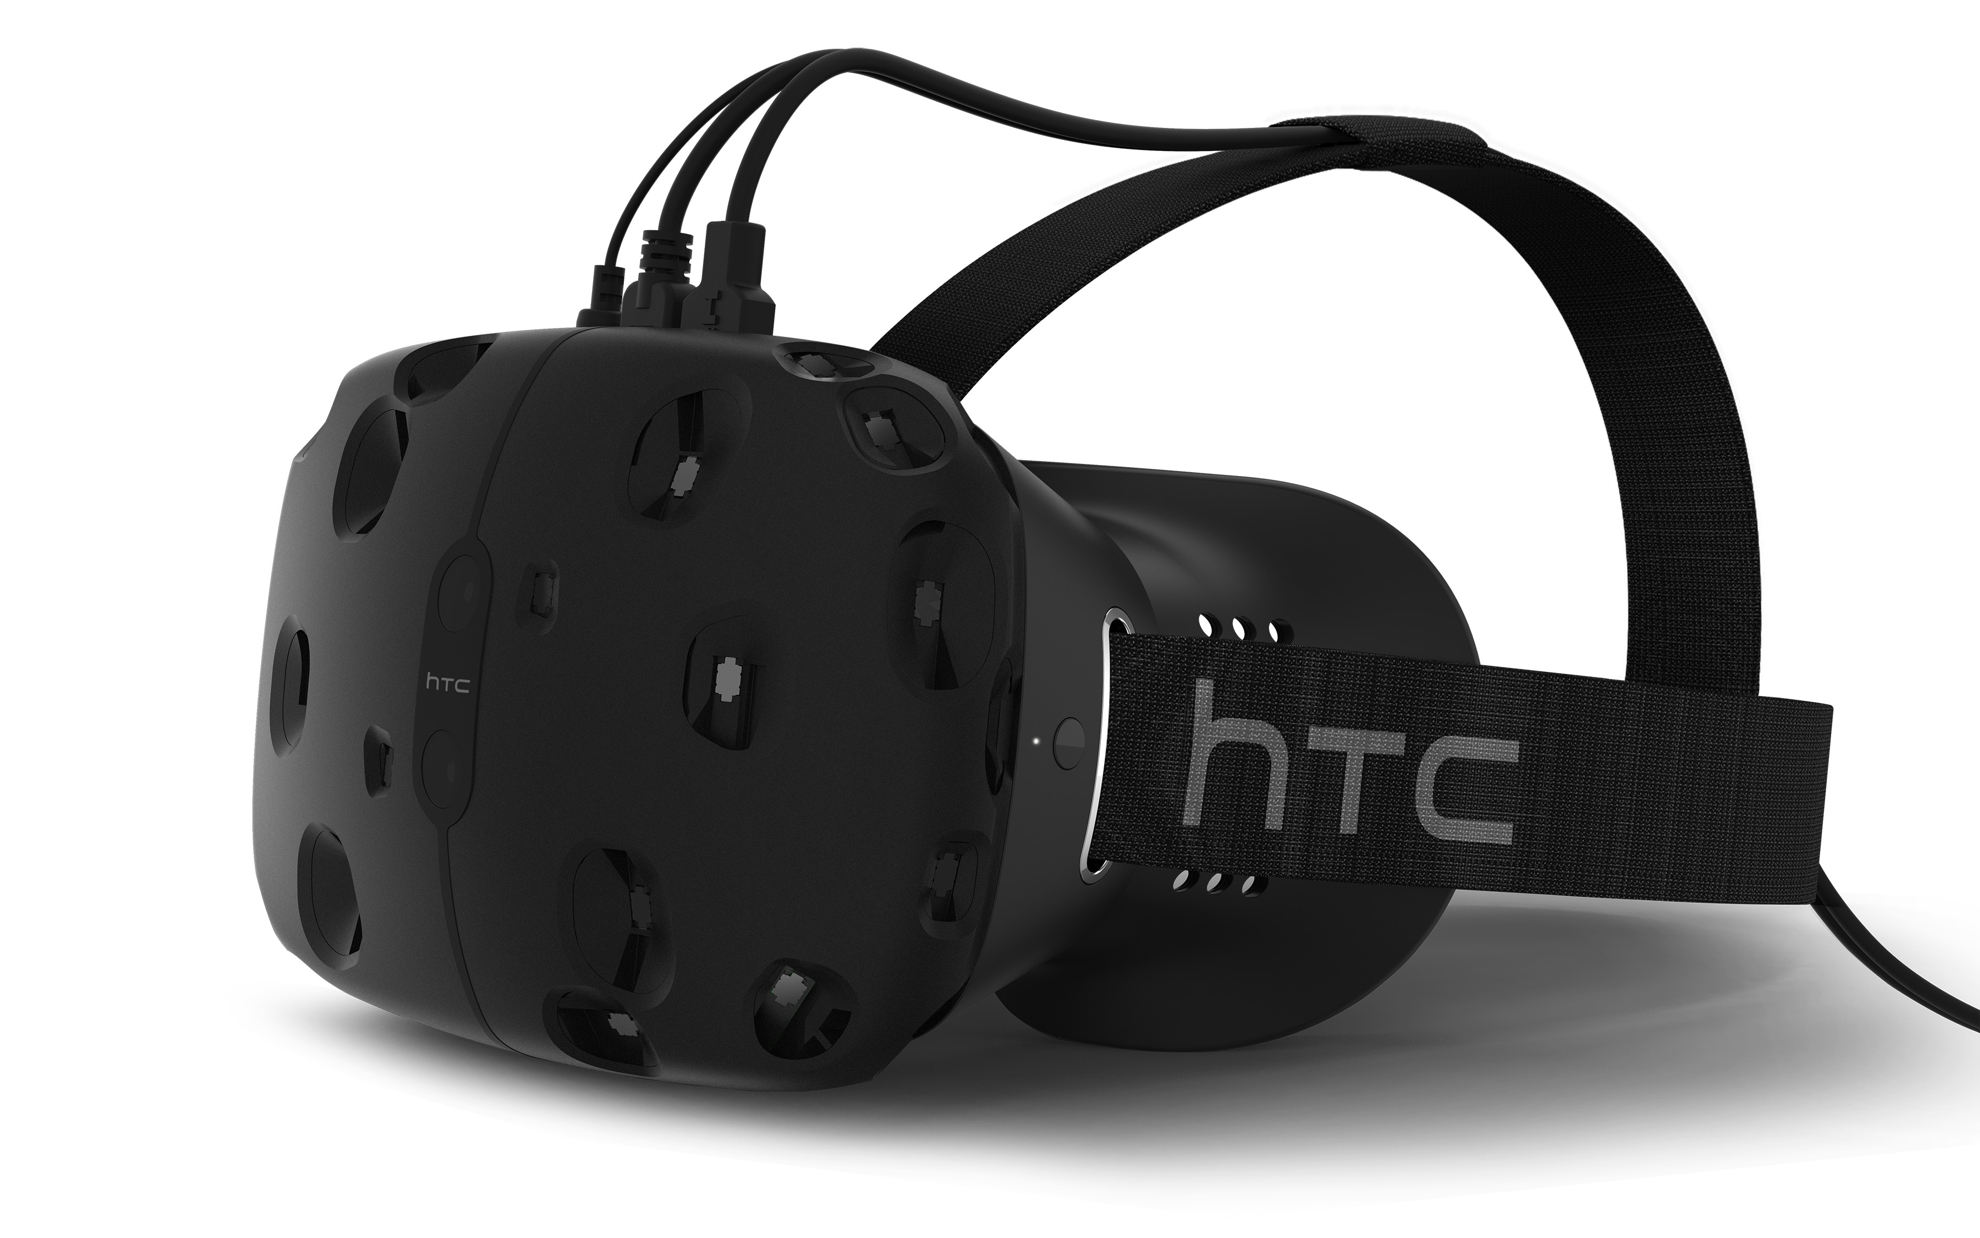 htc-vive-virtual-reality-headset